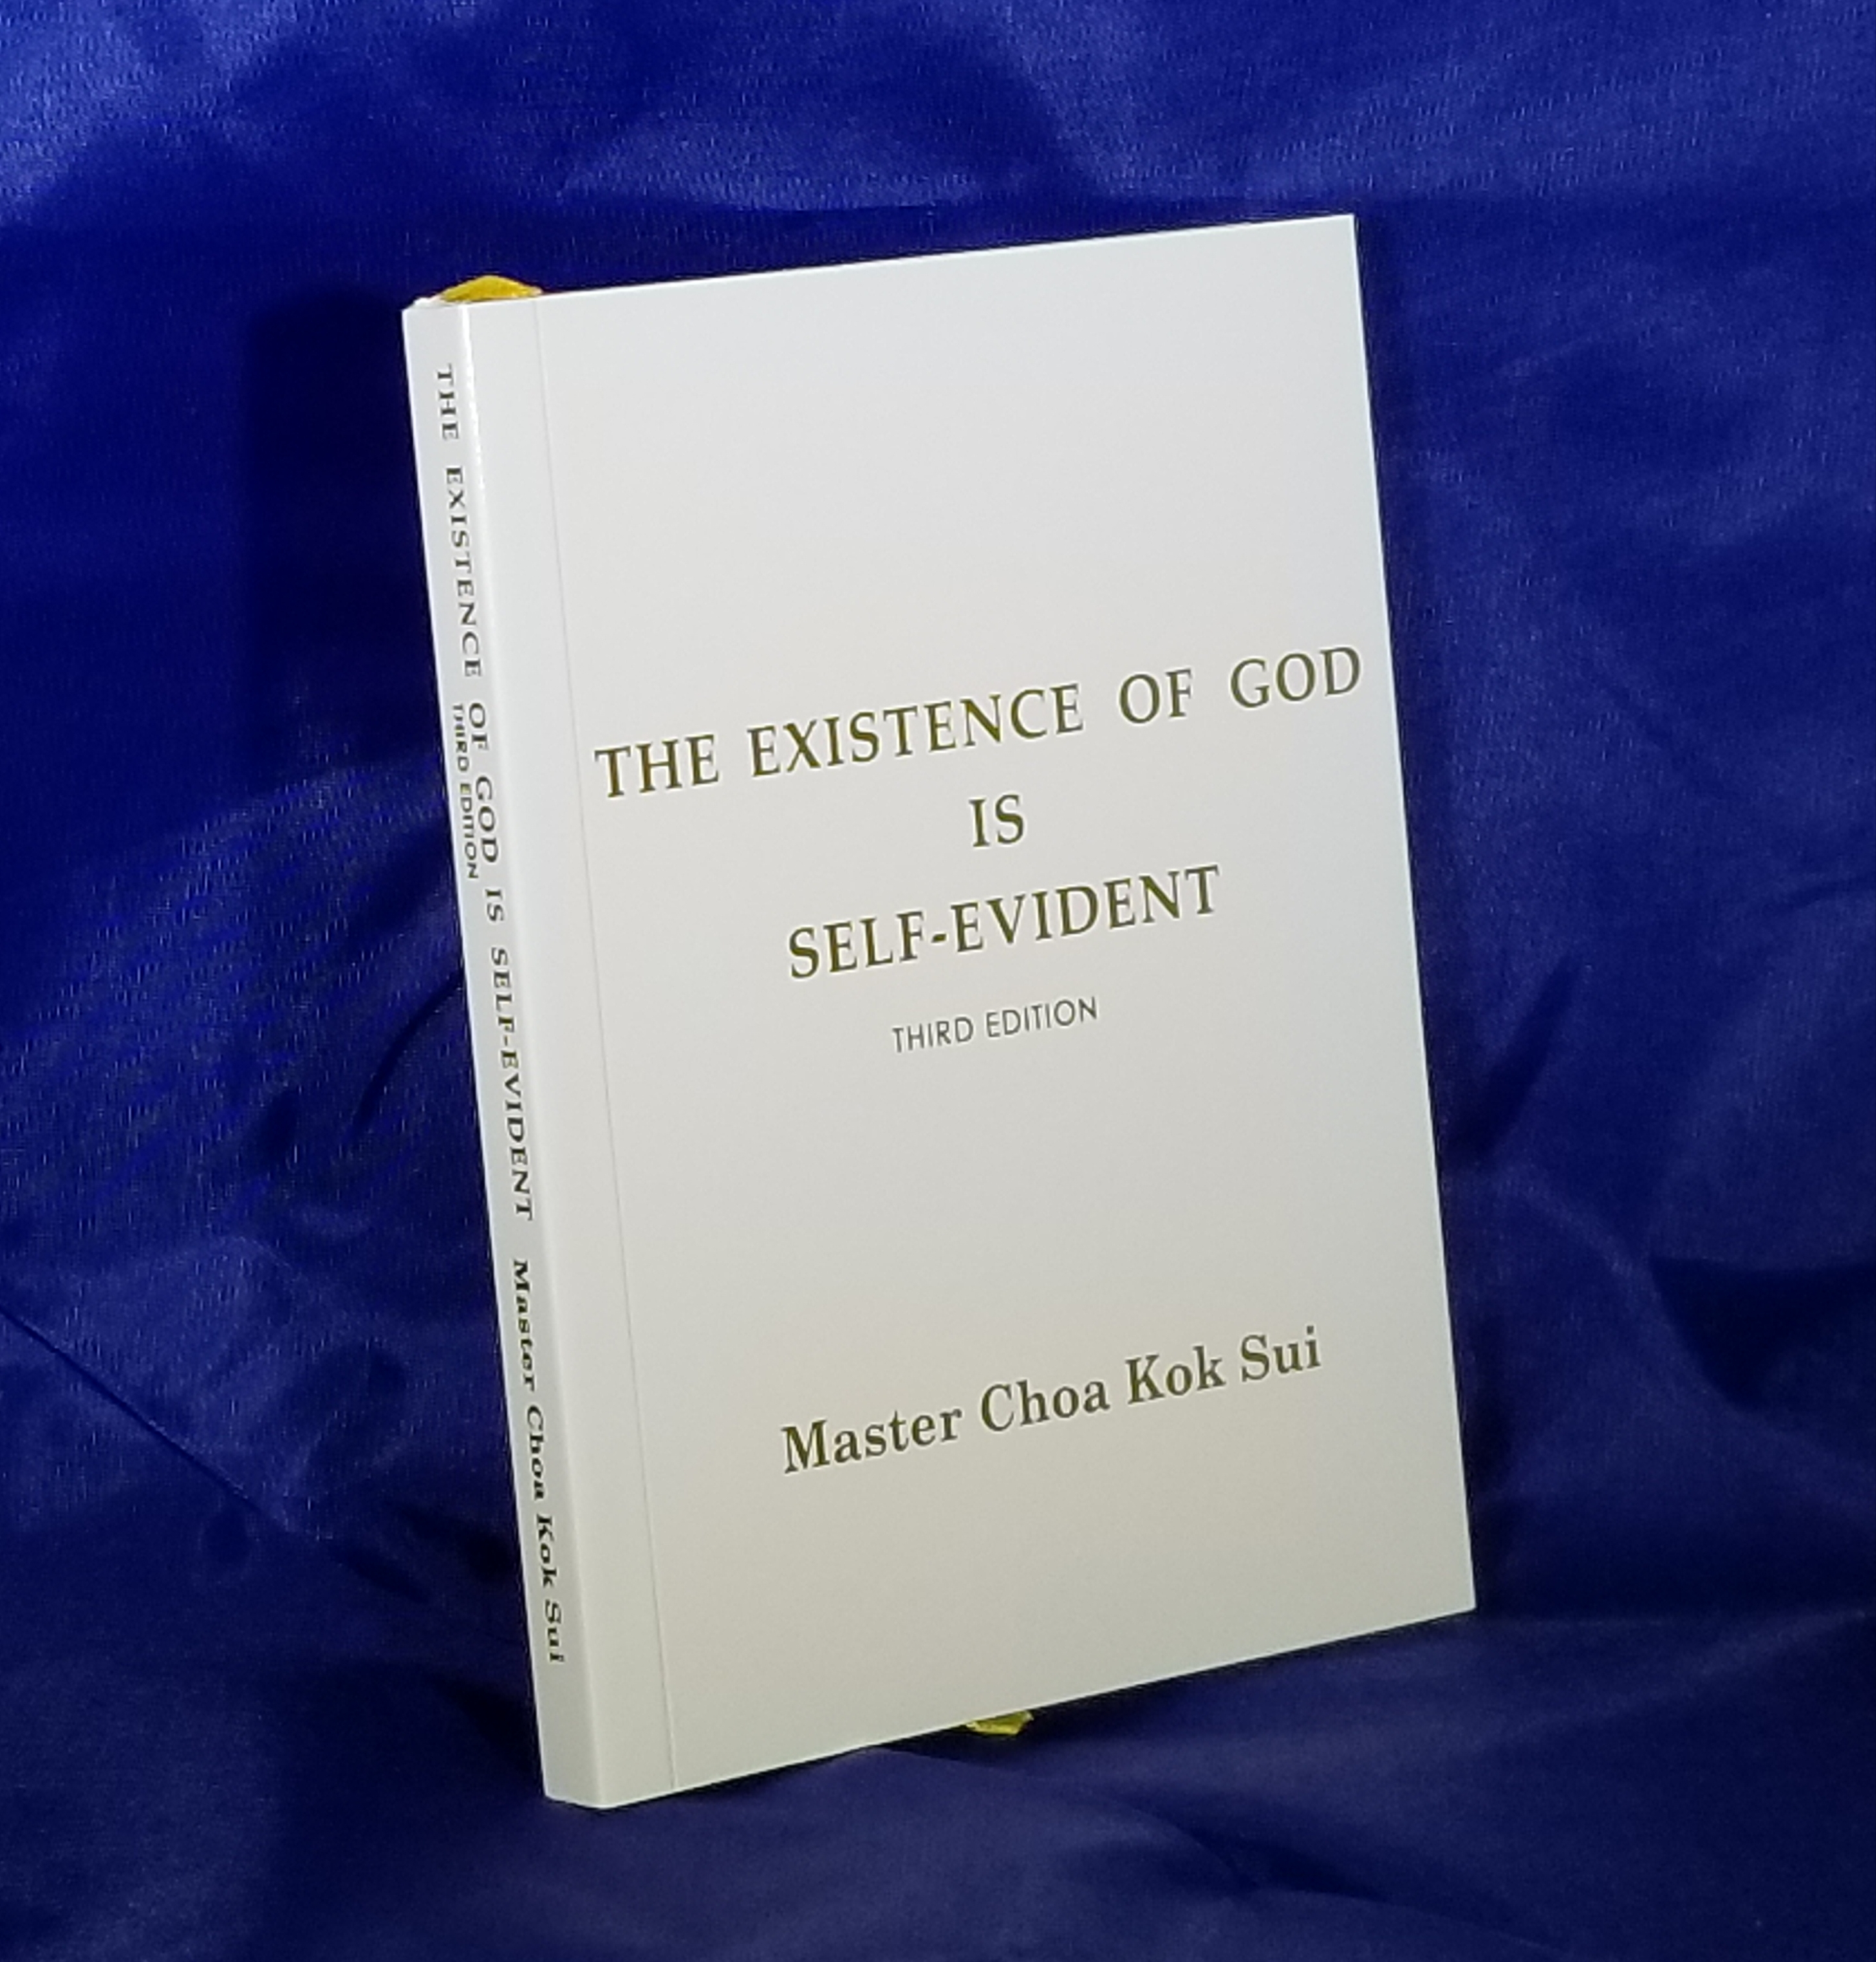 Existance of God is Self-Evident